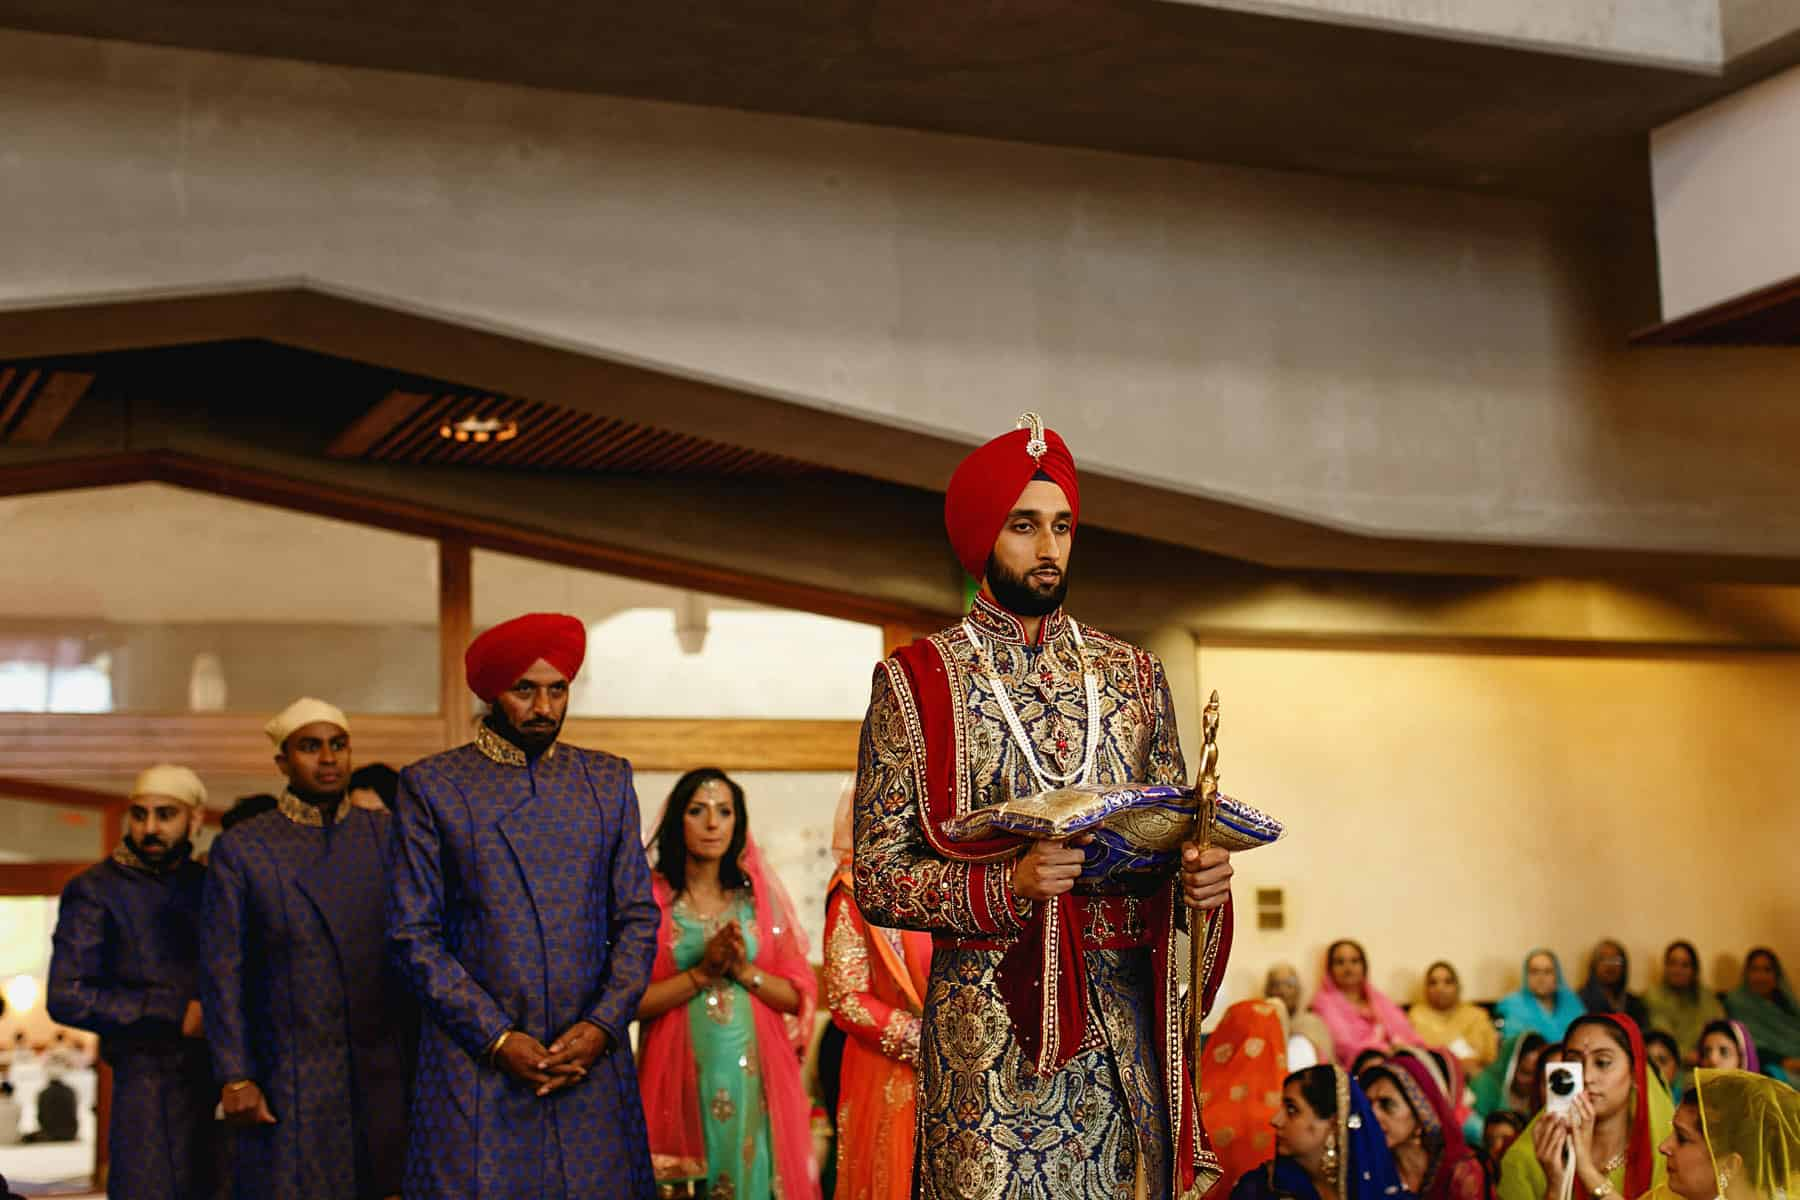 havelock road gurdwara wedding